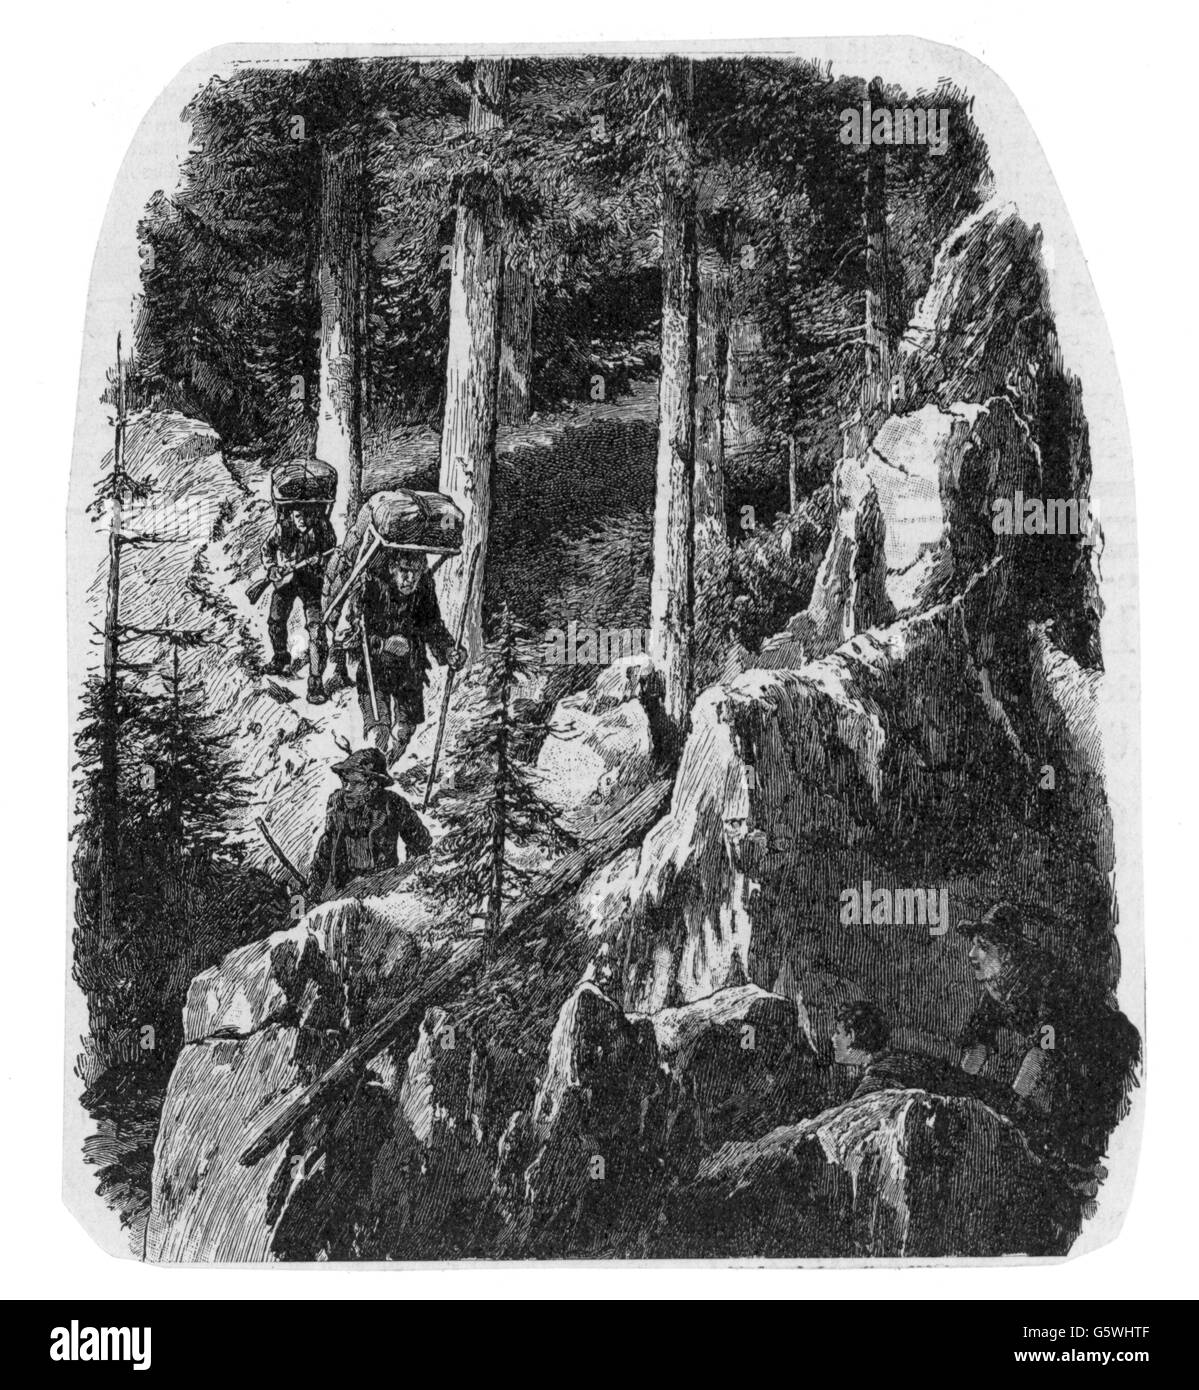 justice, serious crime, smuggling, smugglers in the mountains, wood engraving, circa 1900, Additional-Rights-Clearences - Stock Image